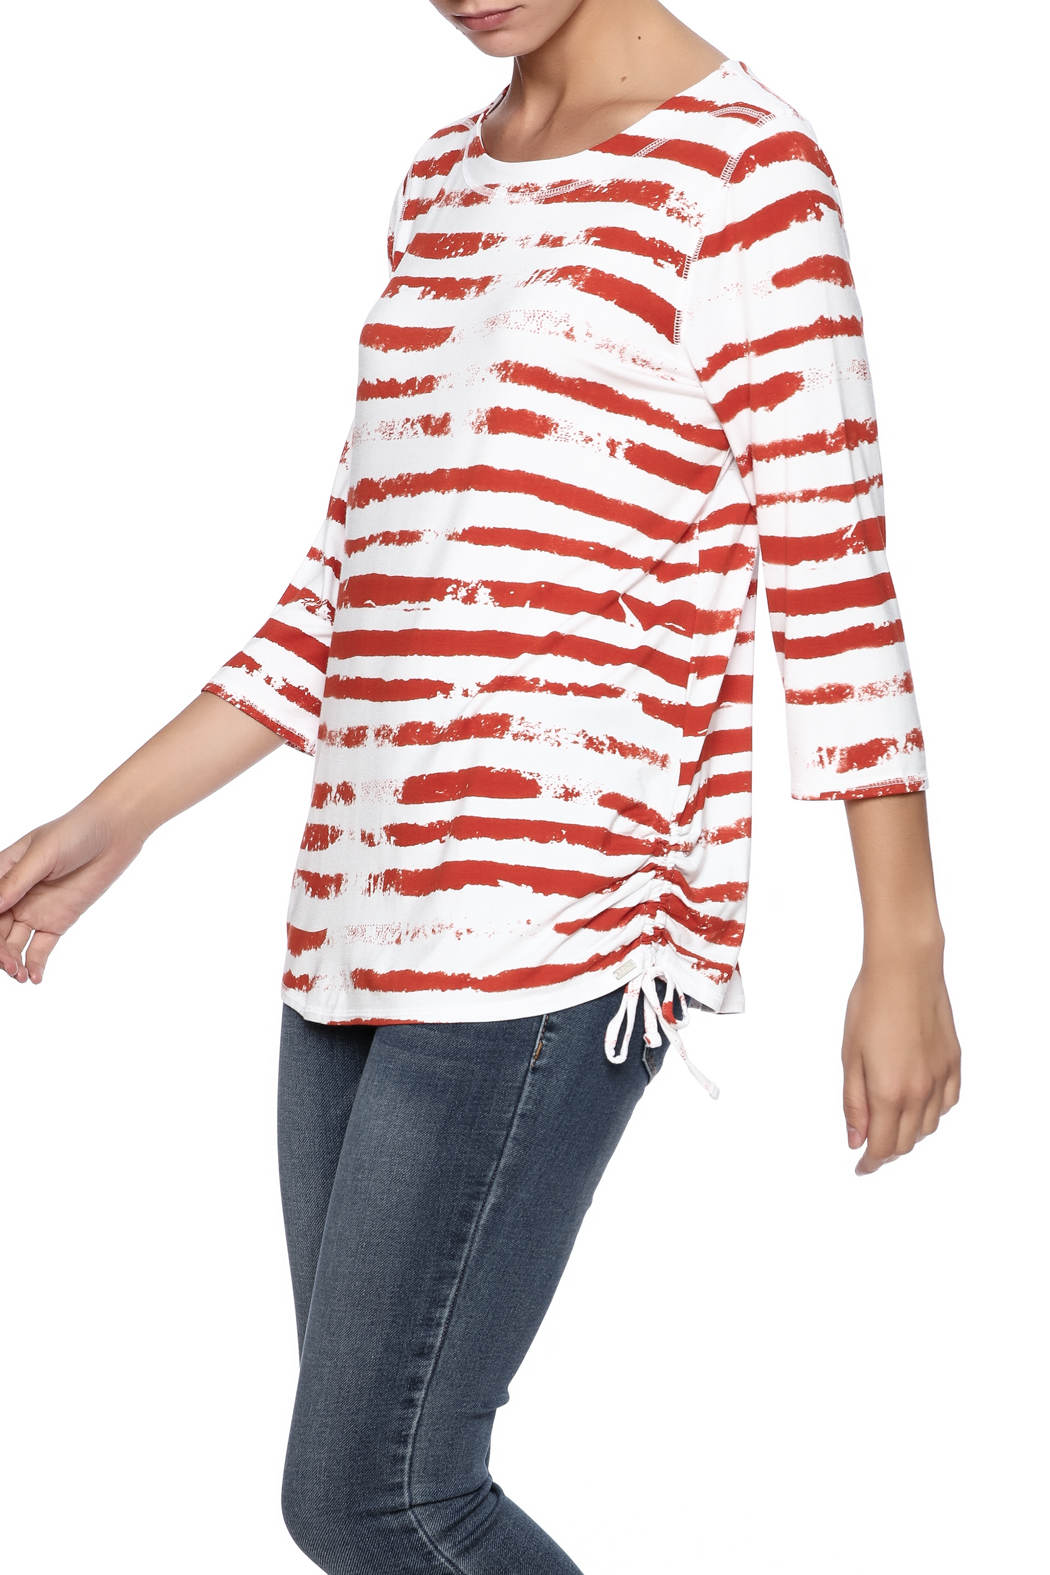 French Dressing Jeans Cloud Stripe Top - Main Image